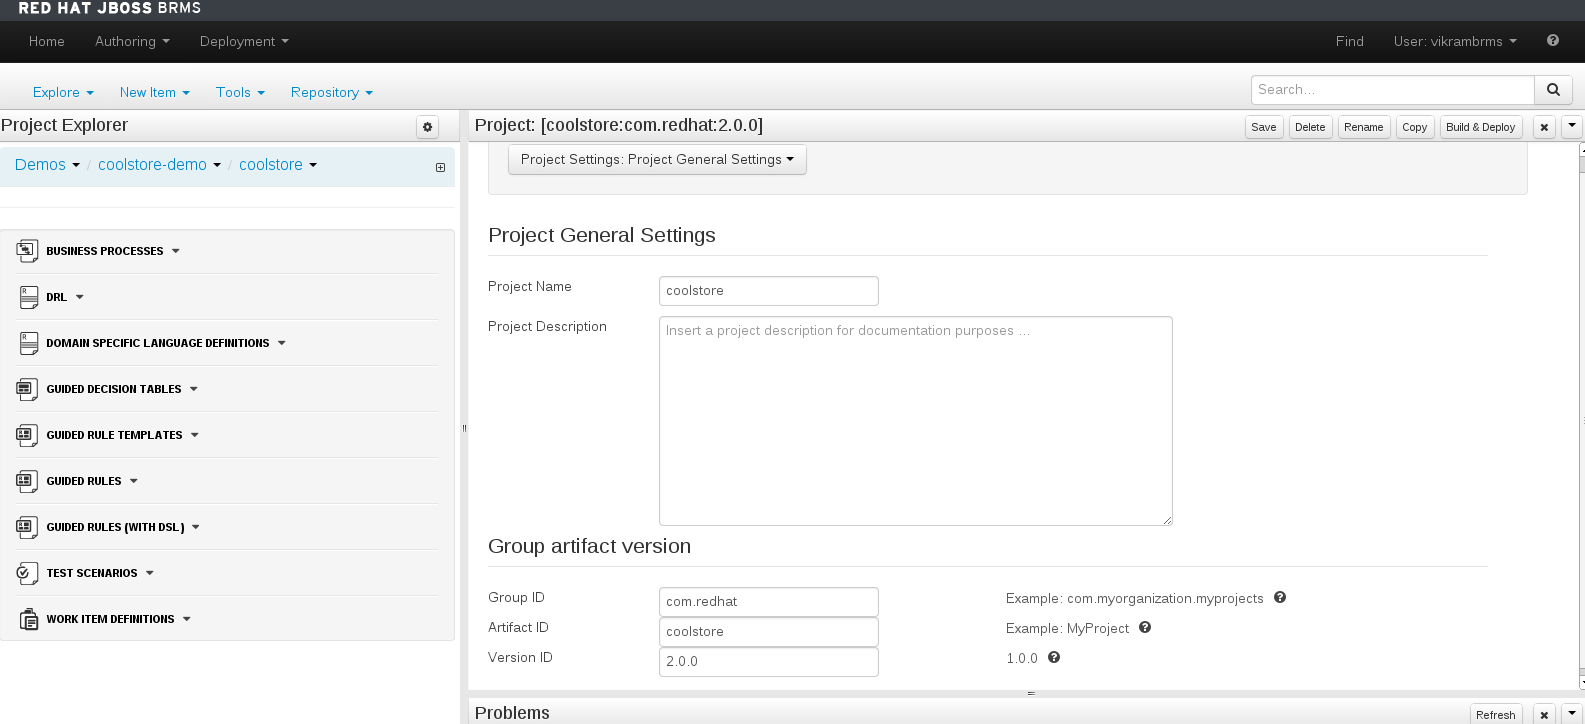 Project Editor - Project Settings